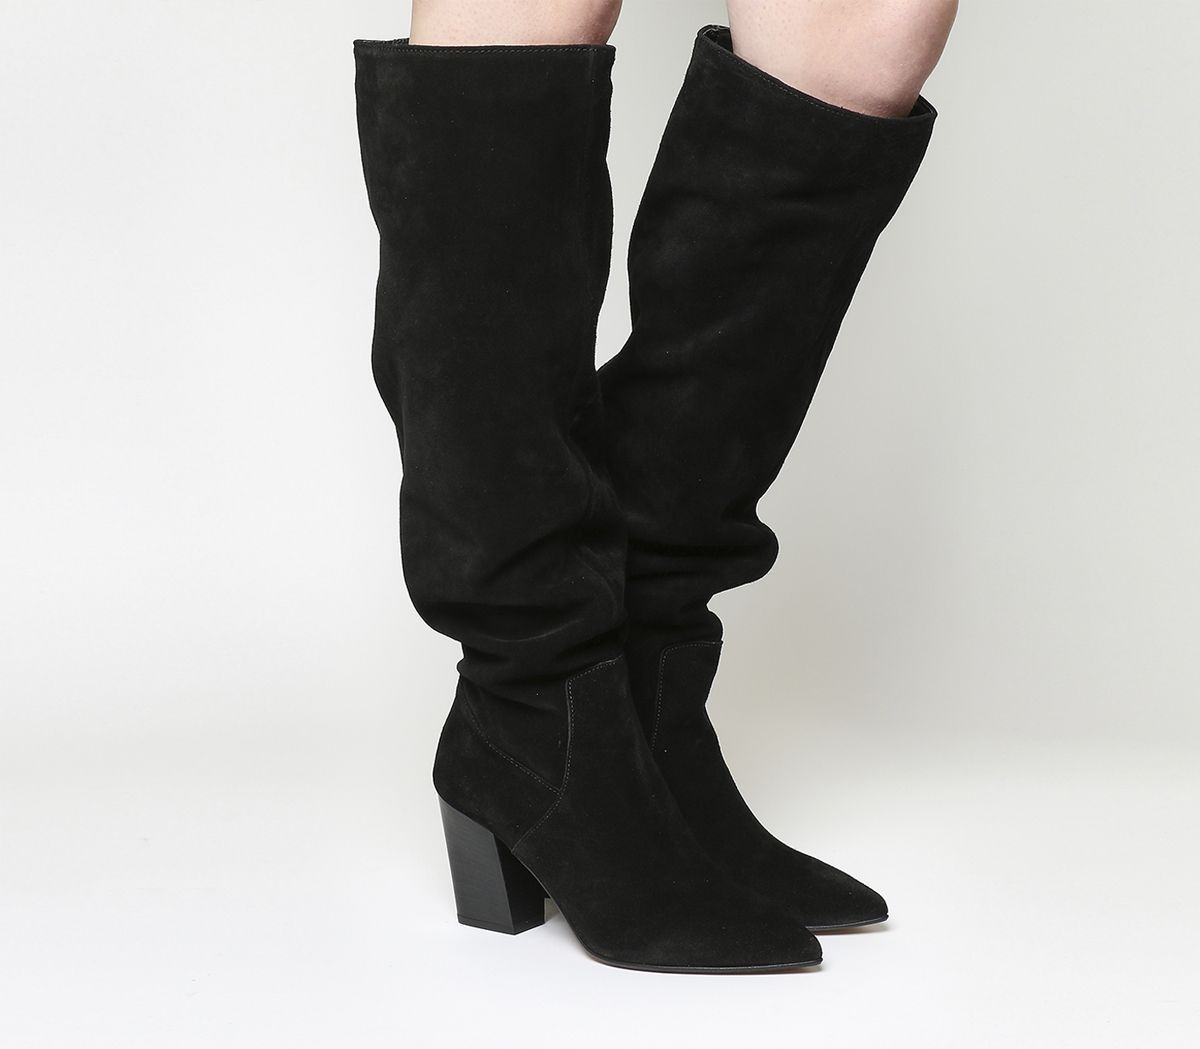 0a8cfc1bcfc7 Office Kola Slouch Suede Knee Boots Black Suede - Knee Boots